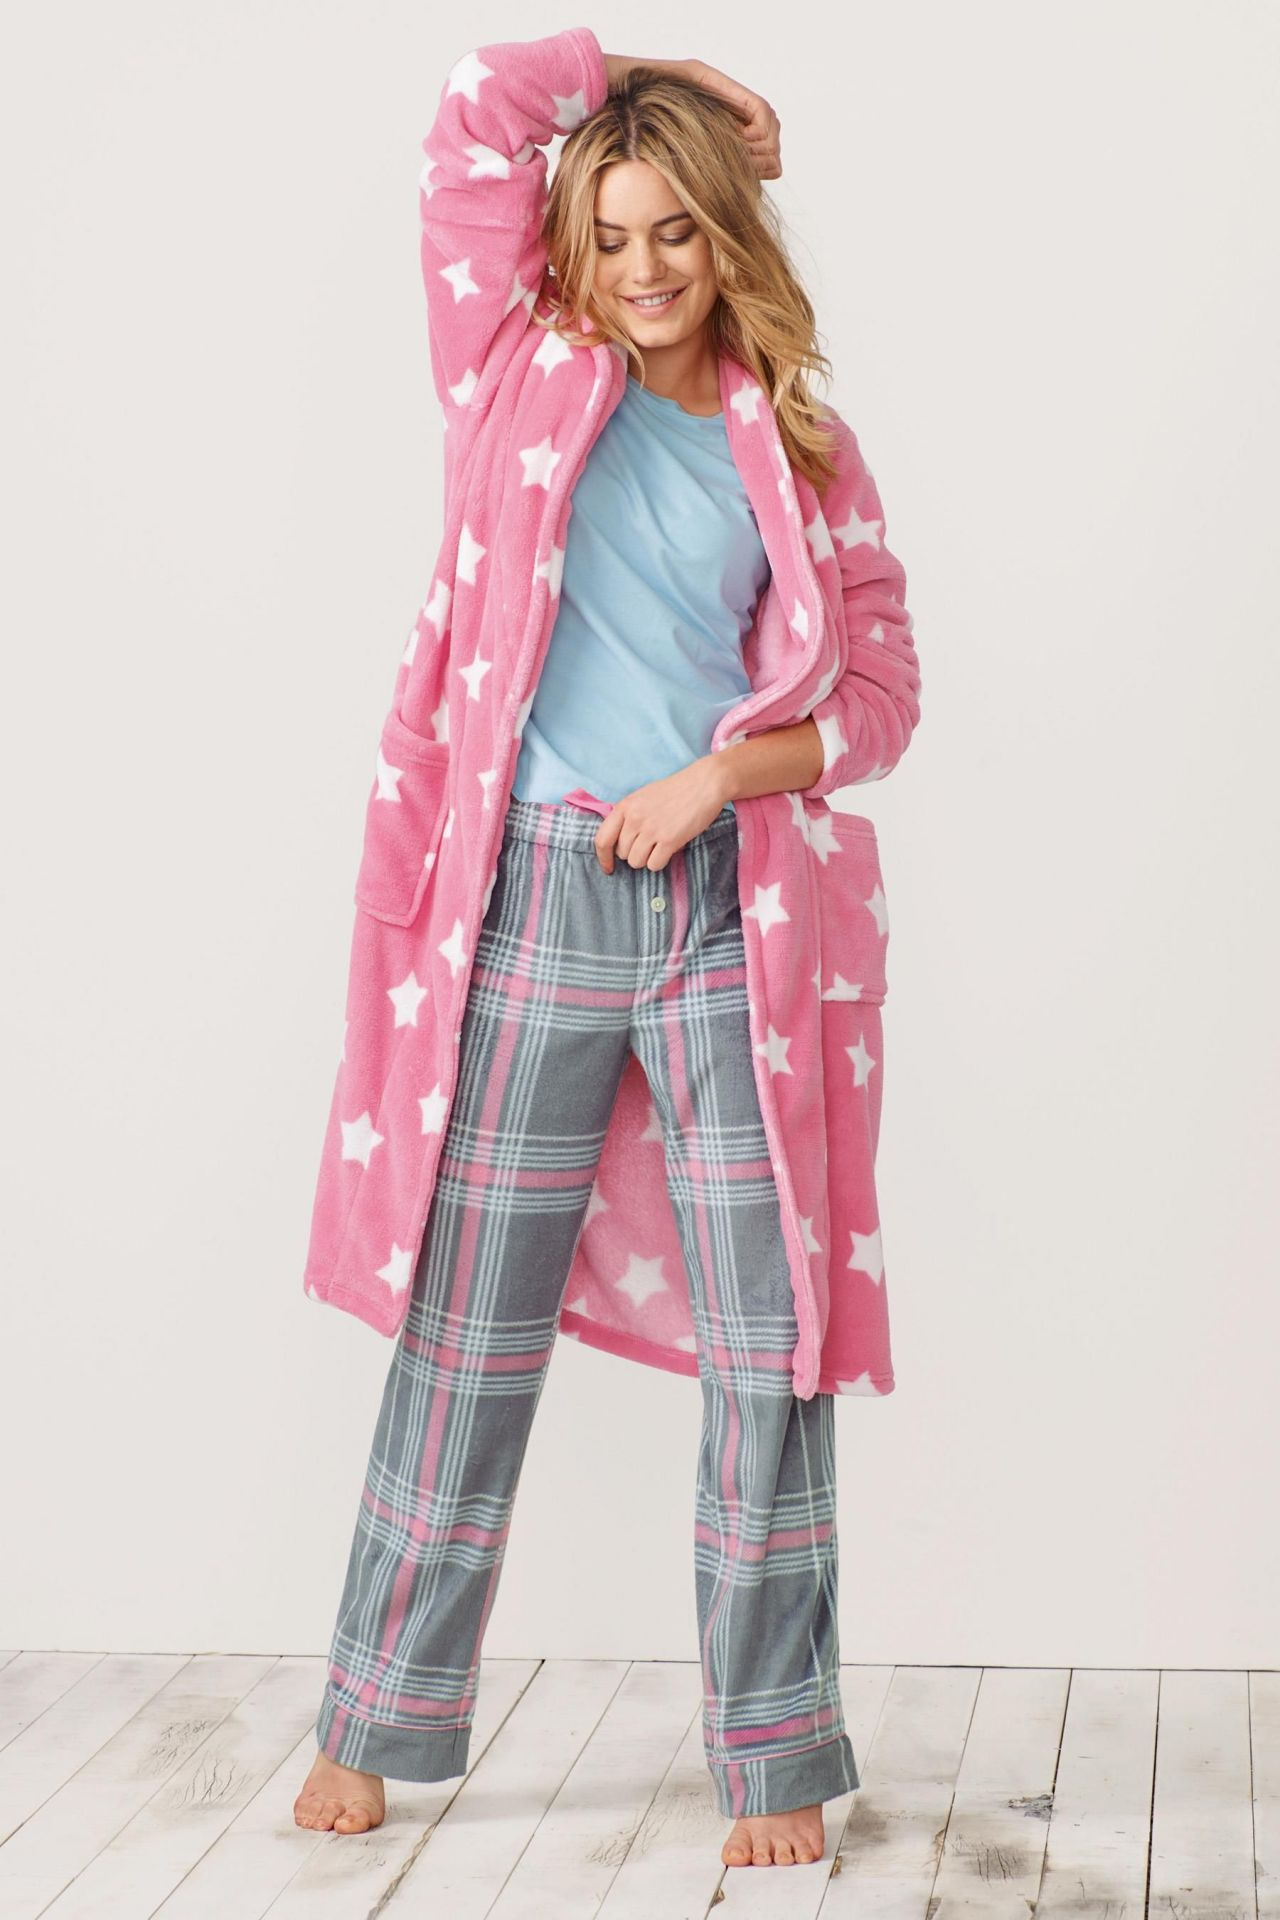 d945ecf36 Camille Rowe - Next Sleepwear - Winter 2014